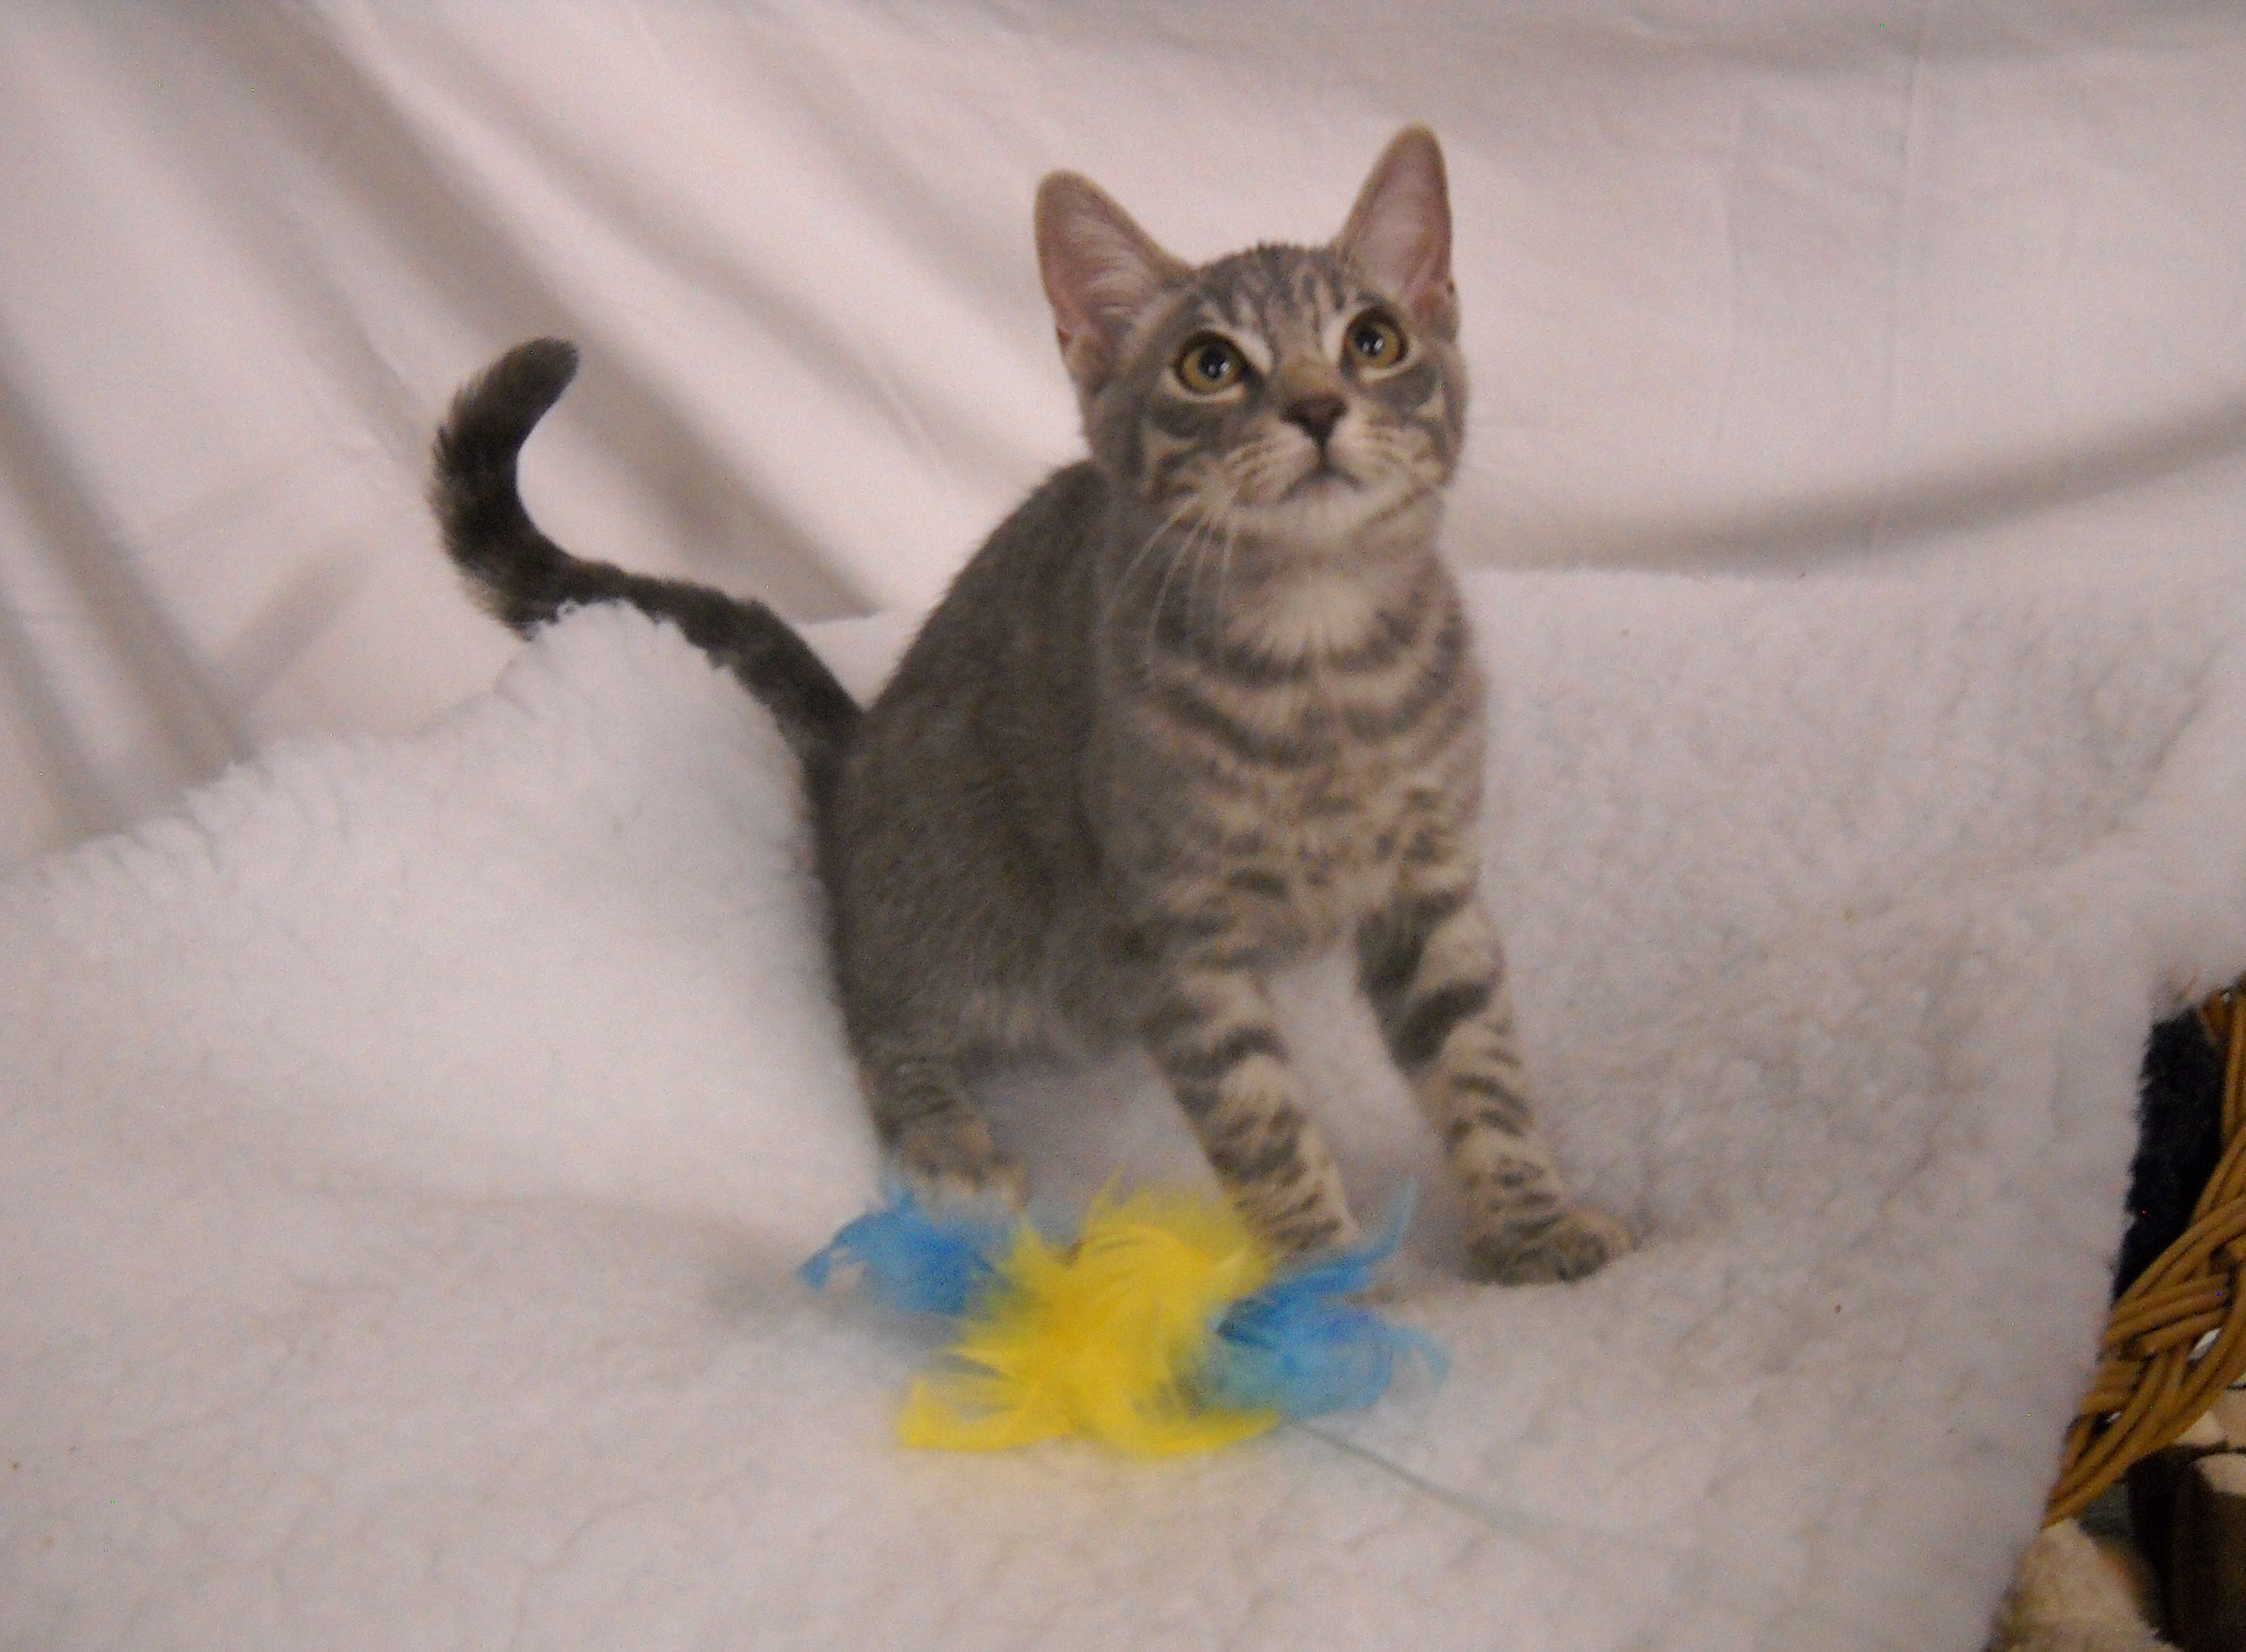 Macaroni Is A Male Silver Blue Tabby Cat Who Is 9 Months Old He Plays Well With Everyone And Is Friendly And Affectionate Dog Spay Dog Adoption Neutering Dogs